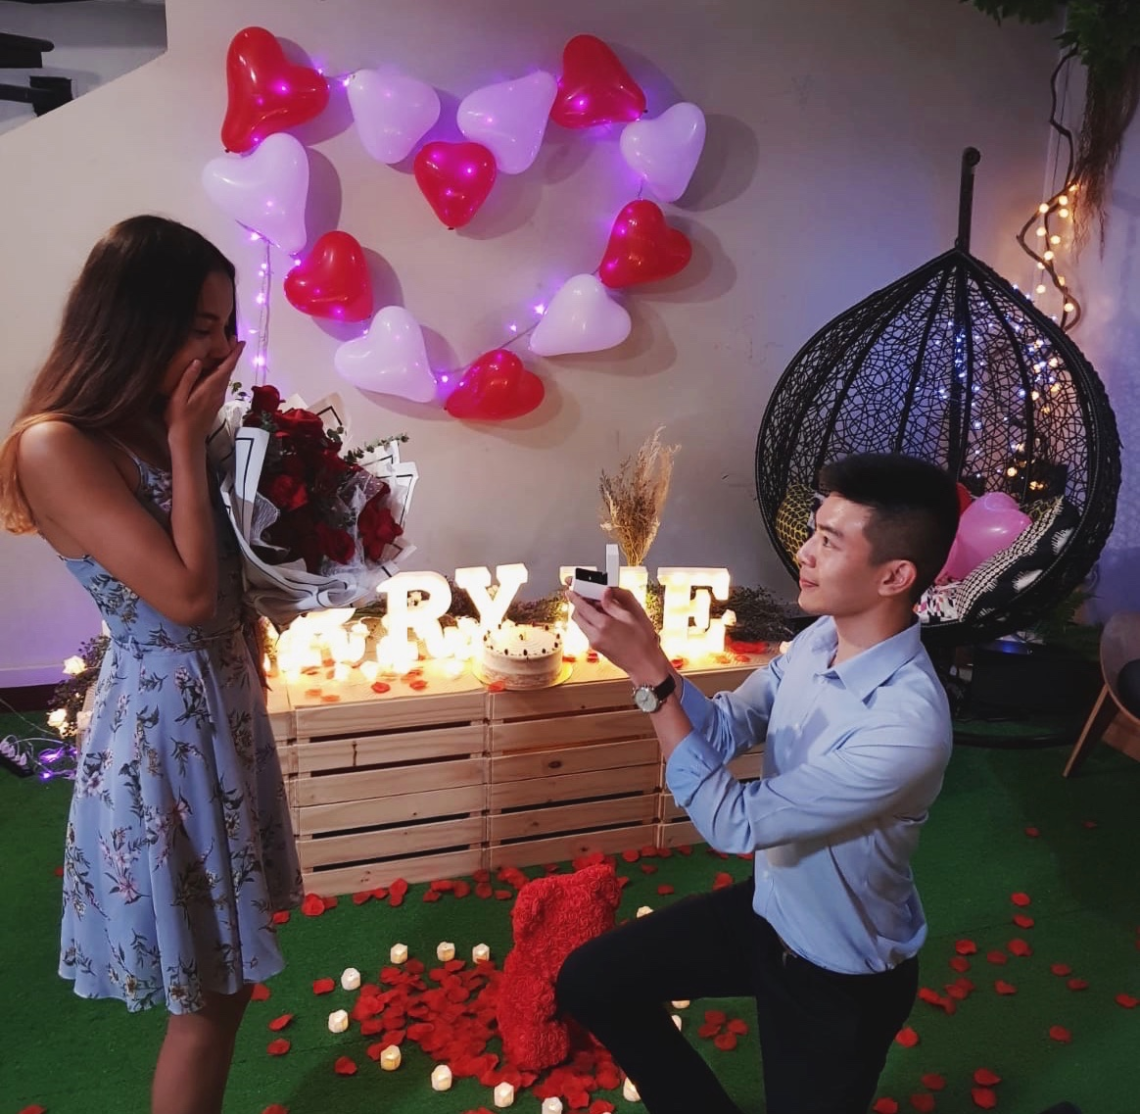 themed proposal setup idea planning service engagement venuerific